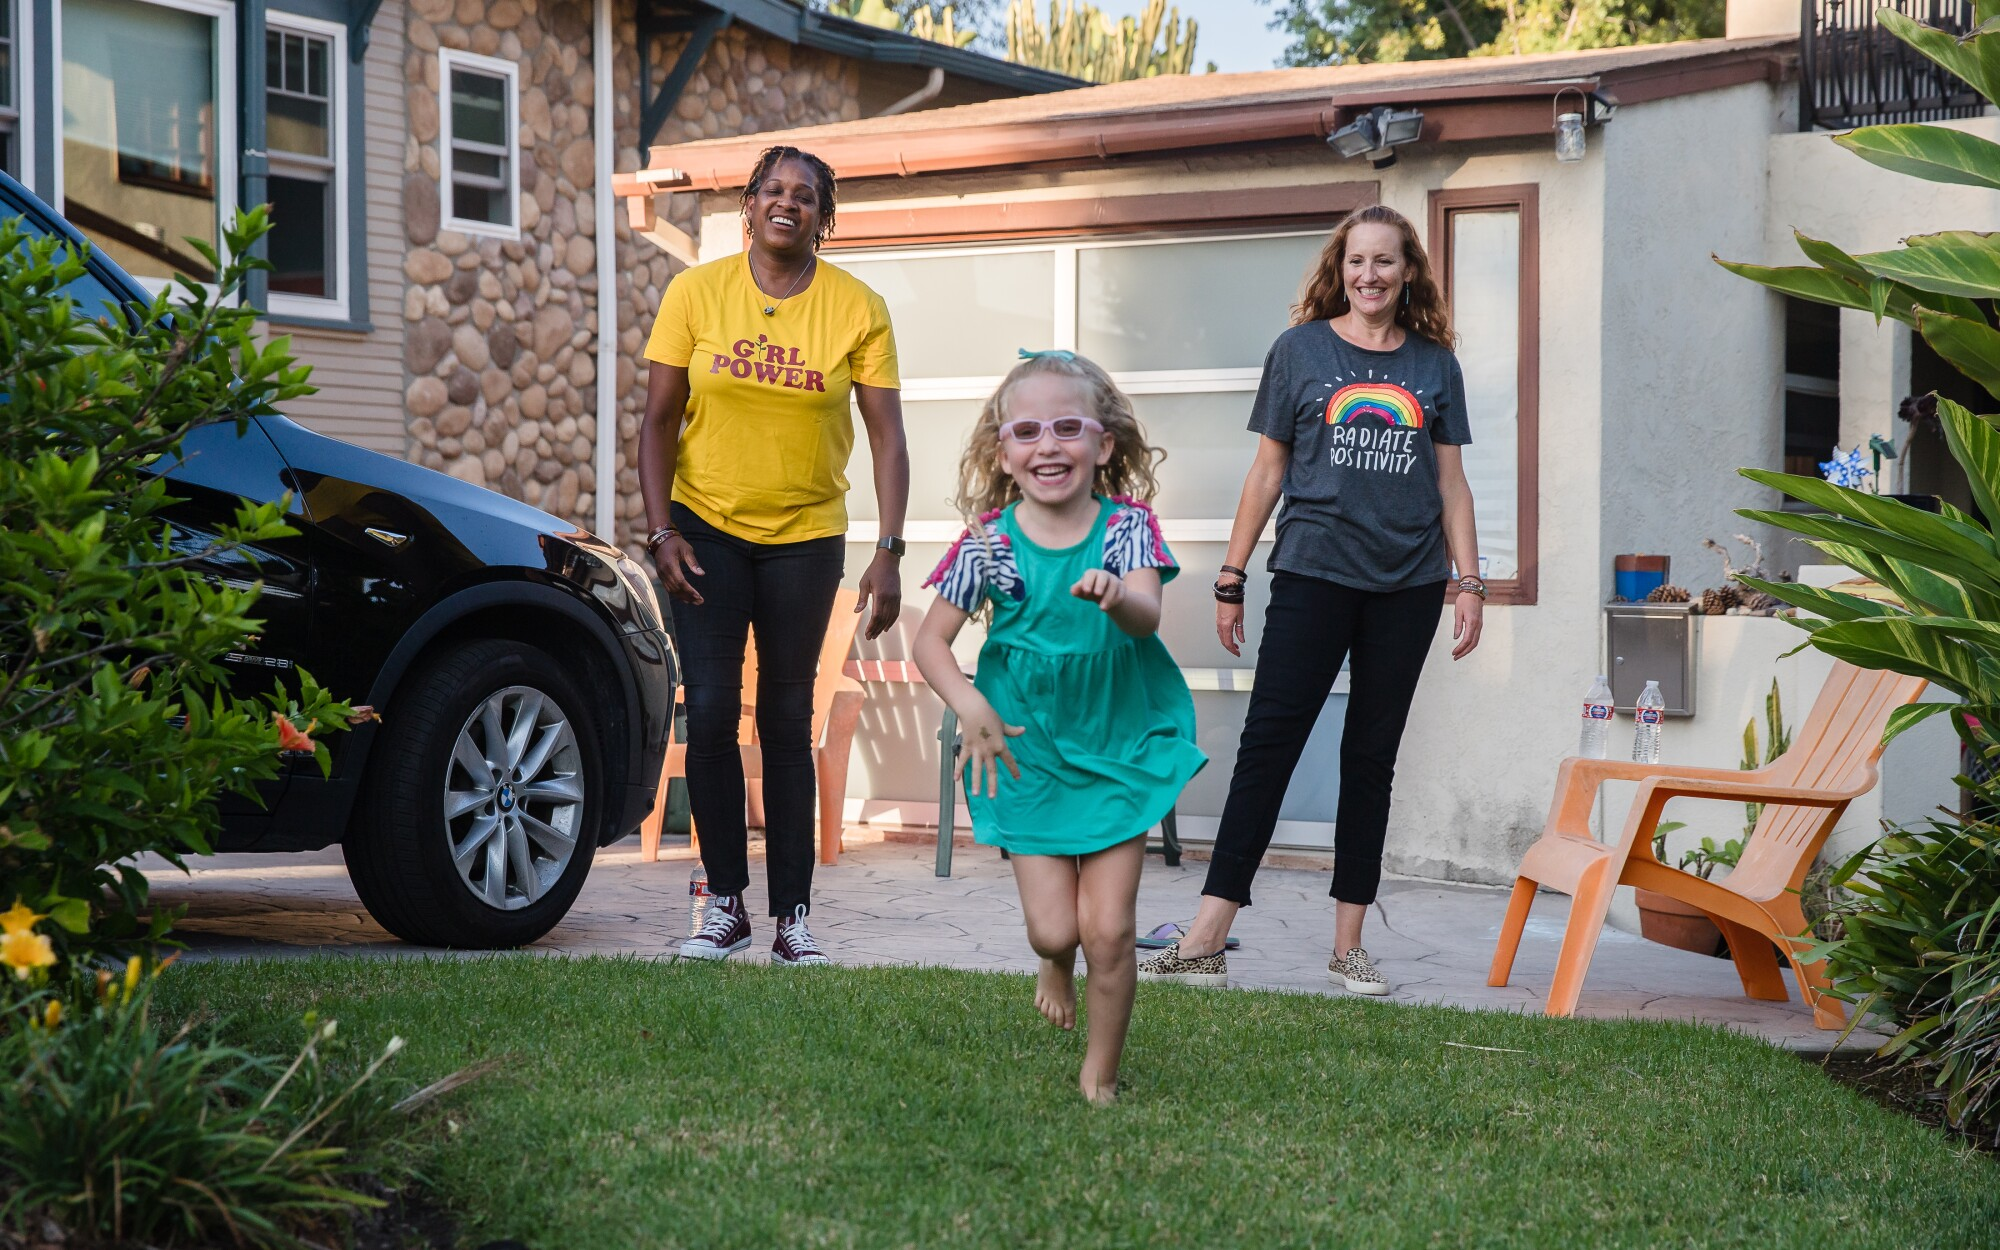 Jyla Berry-Woods (center), plays in the front yard with her moms, Jualeah Woods (left) and Jennifer Berry (right).